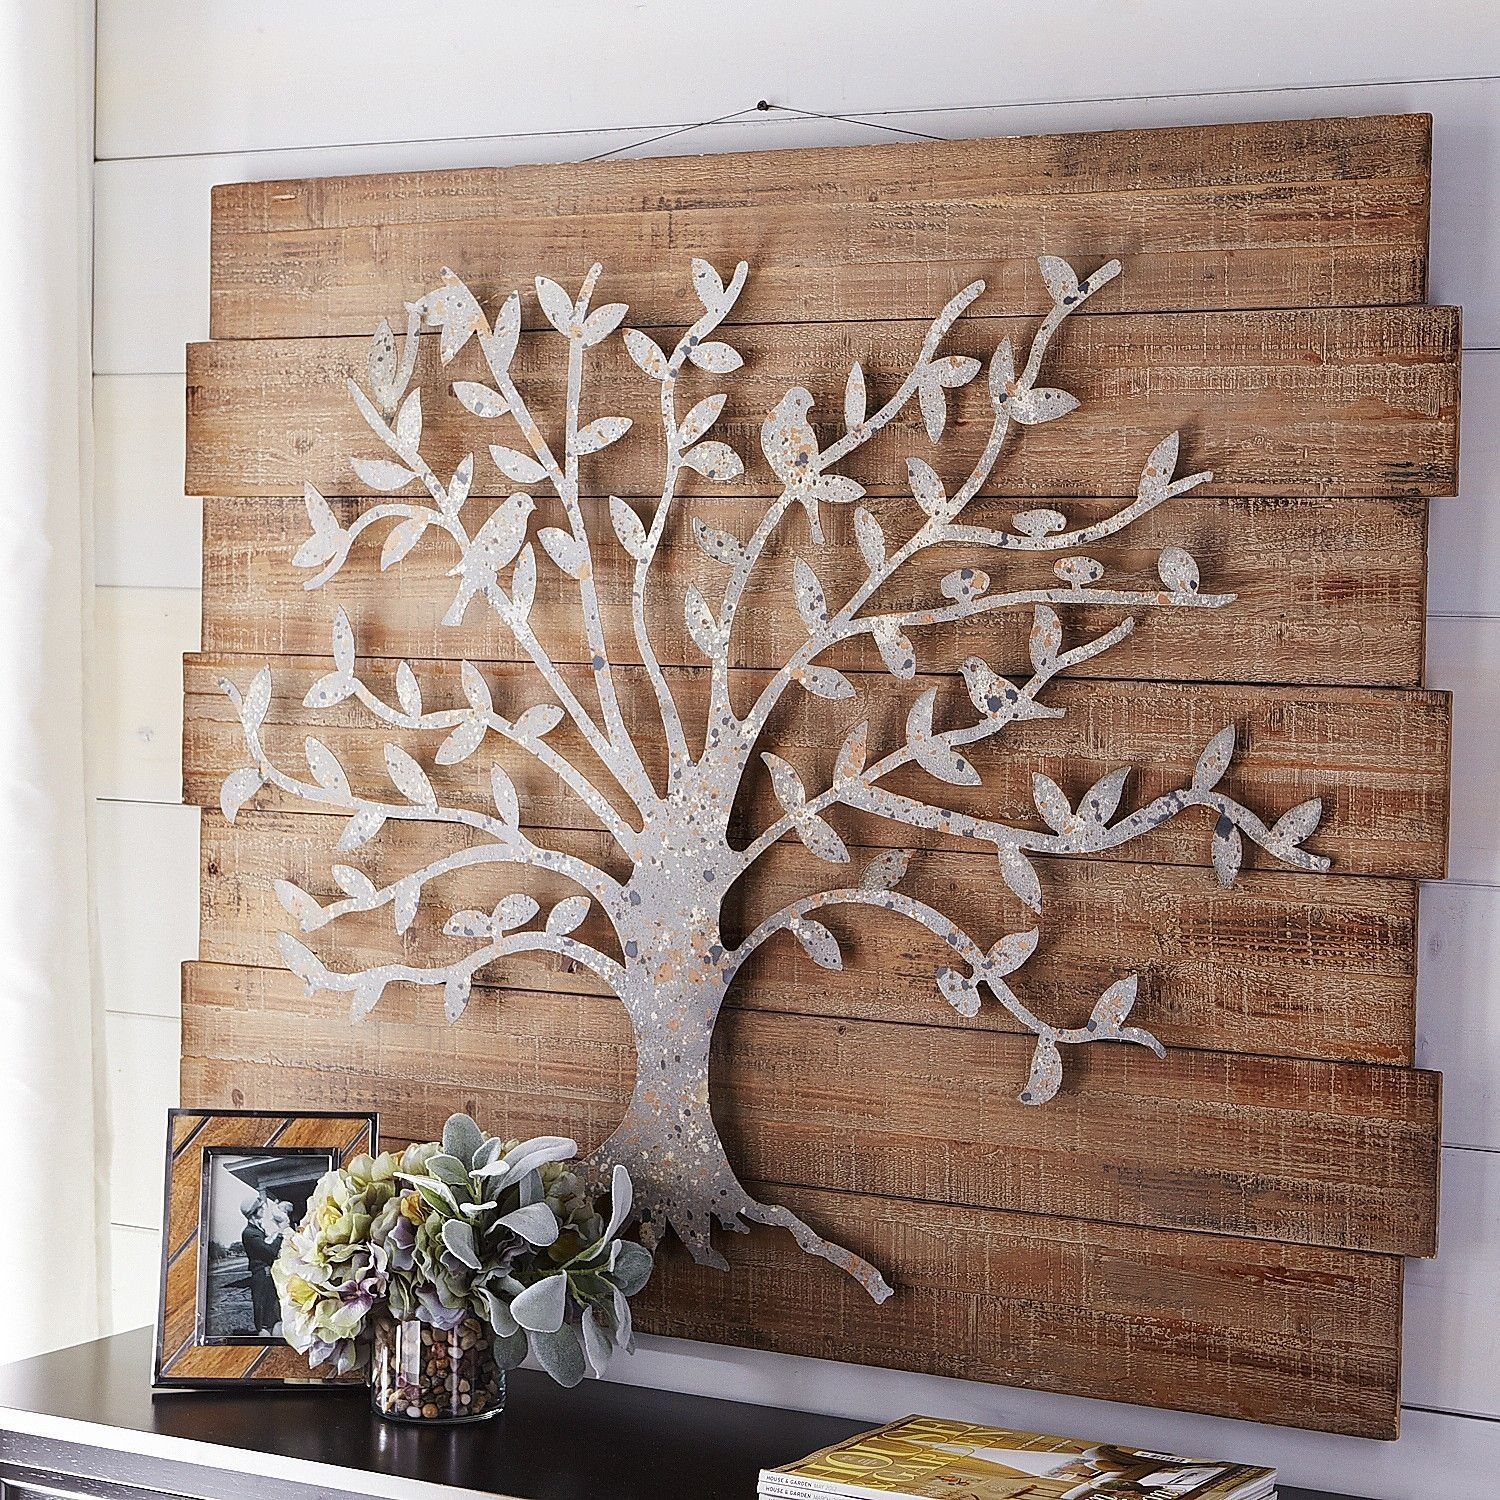 Timeless Tree Wall Decor | Pier 1 Imports … | Metal Work | Pinte… for Tree Wall Art (Image 14 of 20)